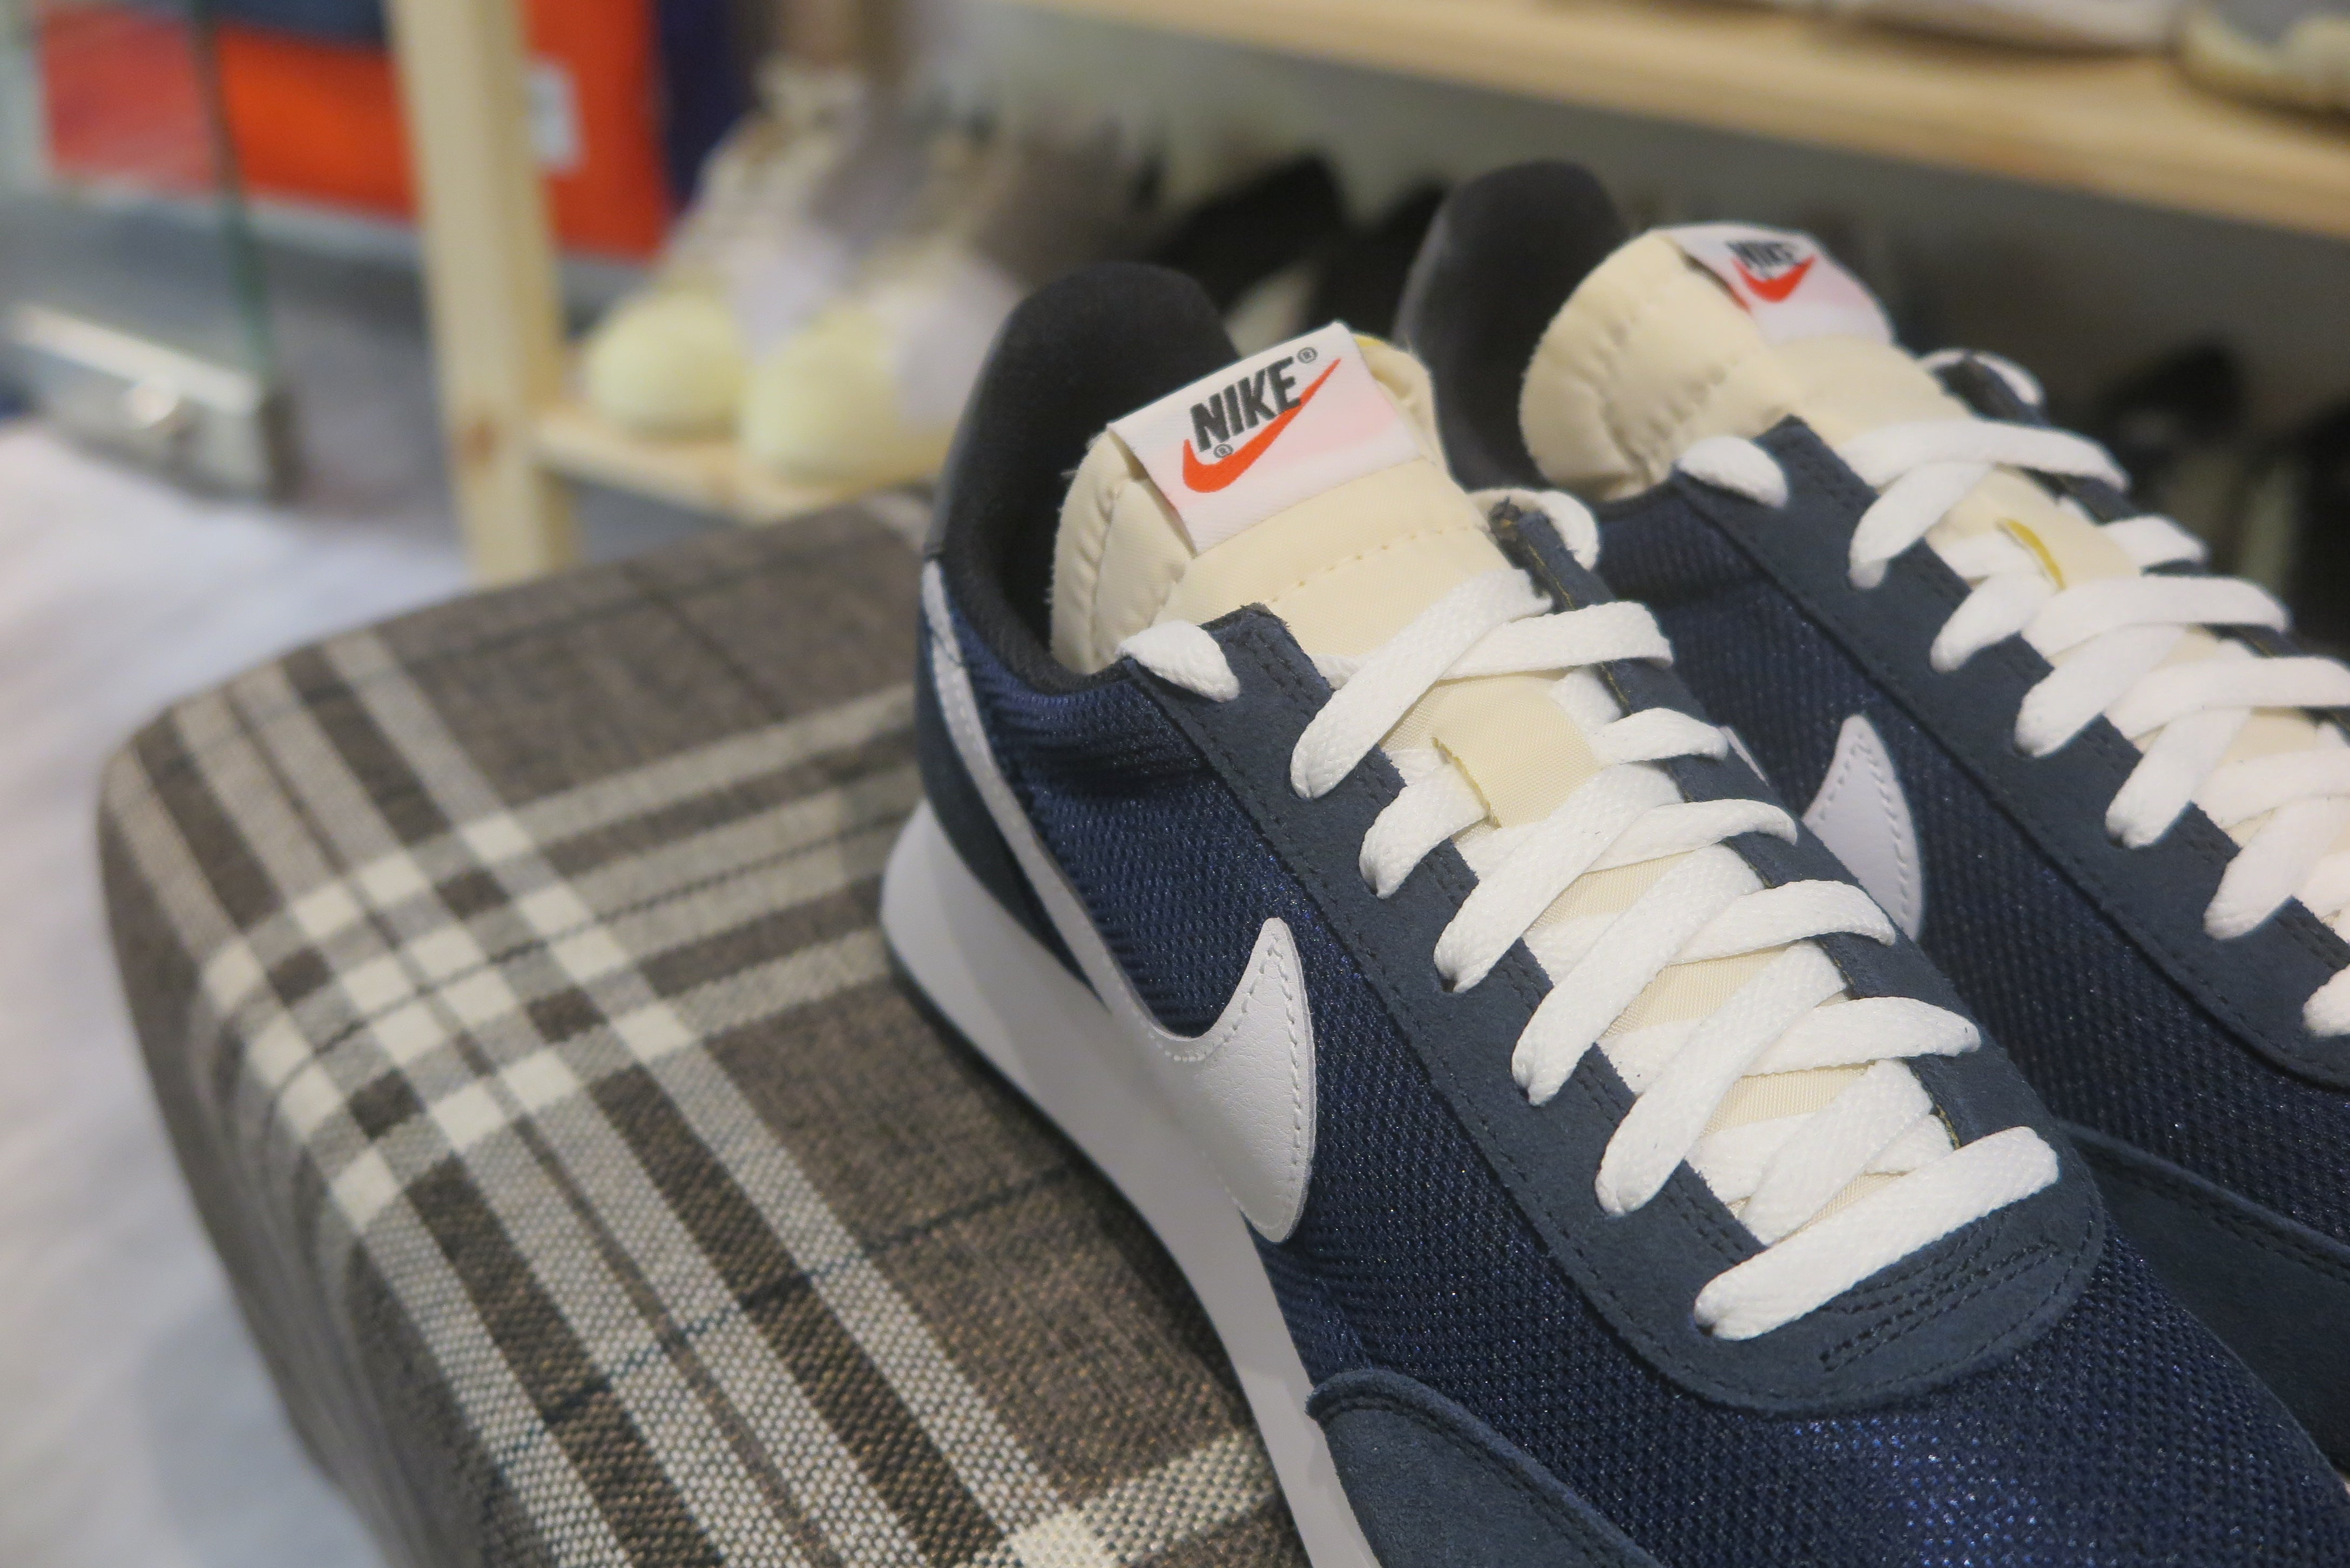 Nike Air Tailwind 79 - Dark Obsidian/Midnight Navy/Black/White #487754-406-Preorder Item-Navy Selected Shop